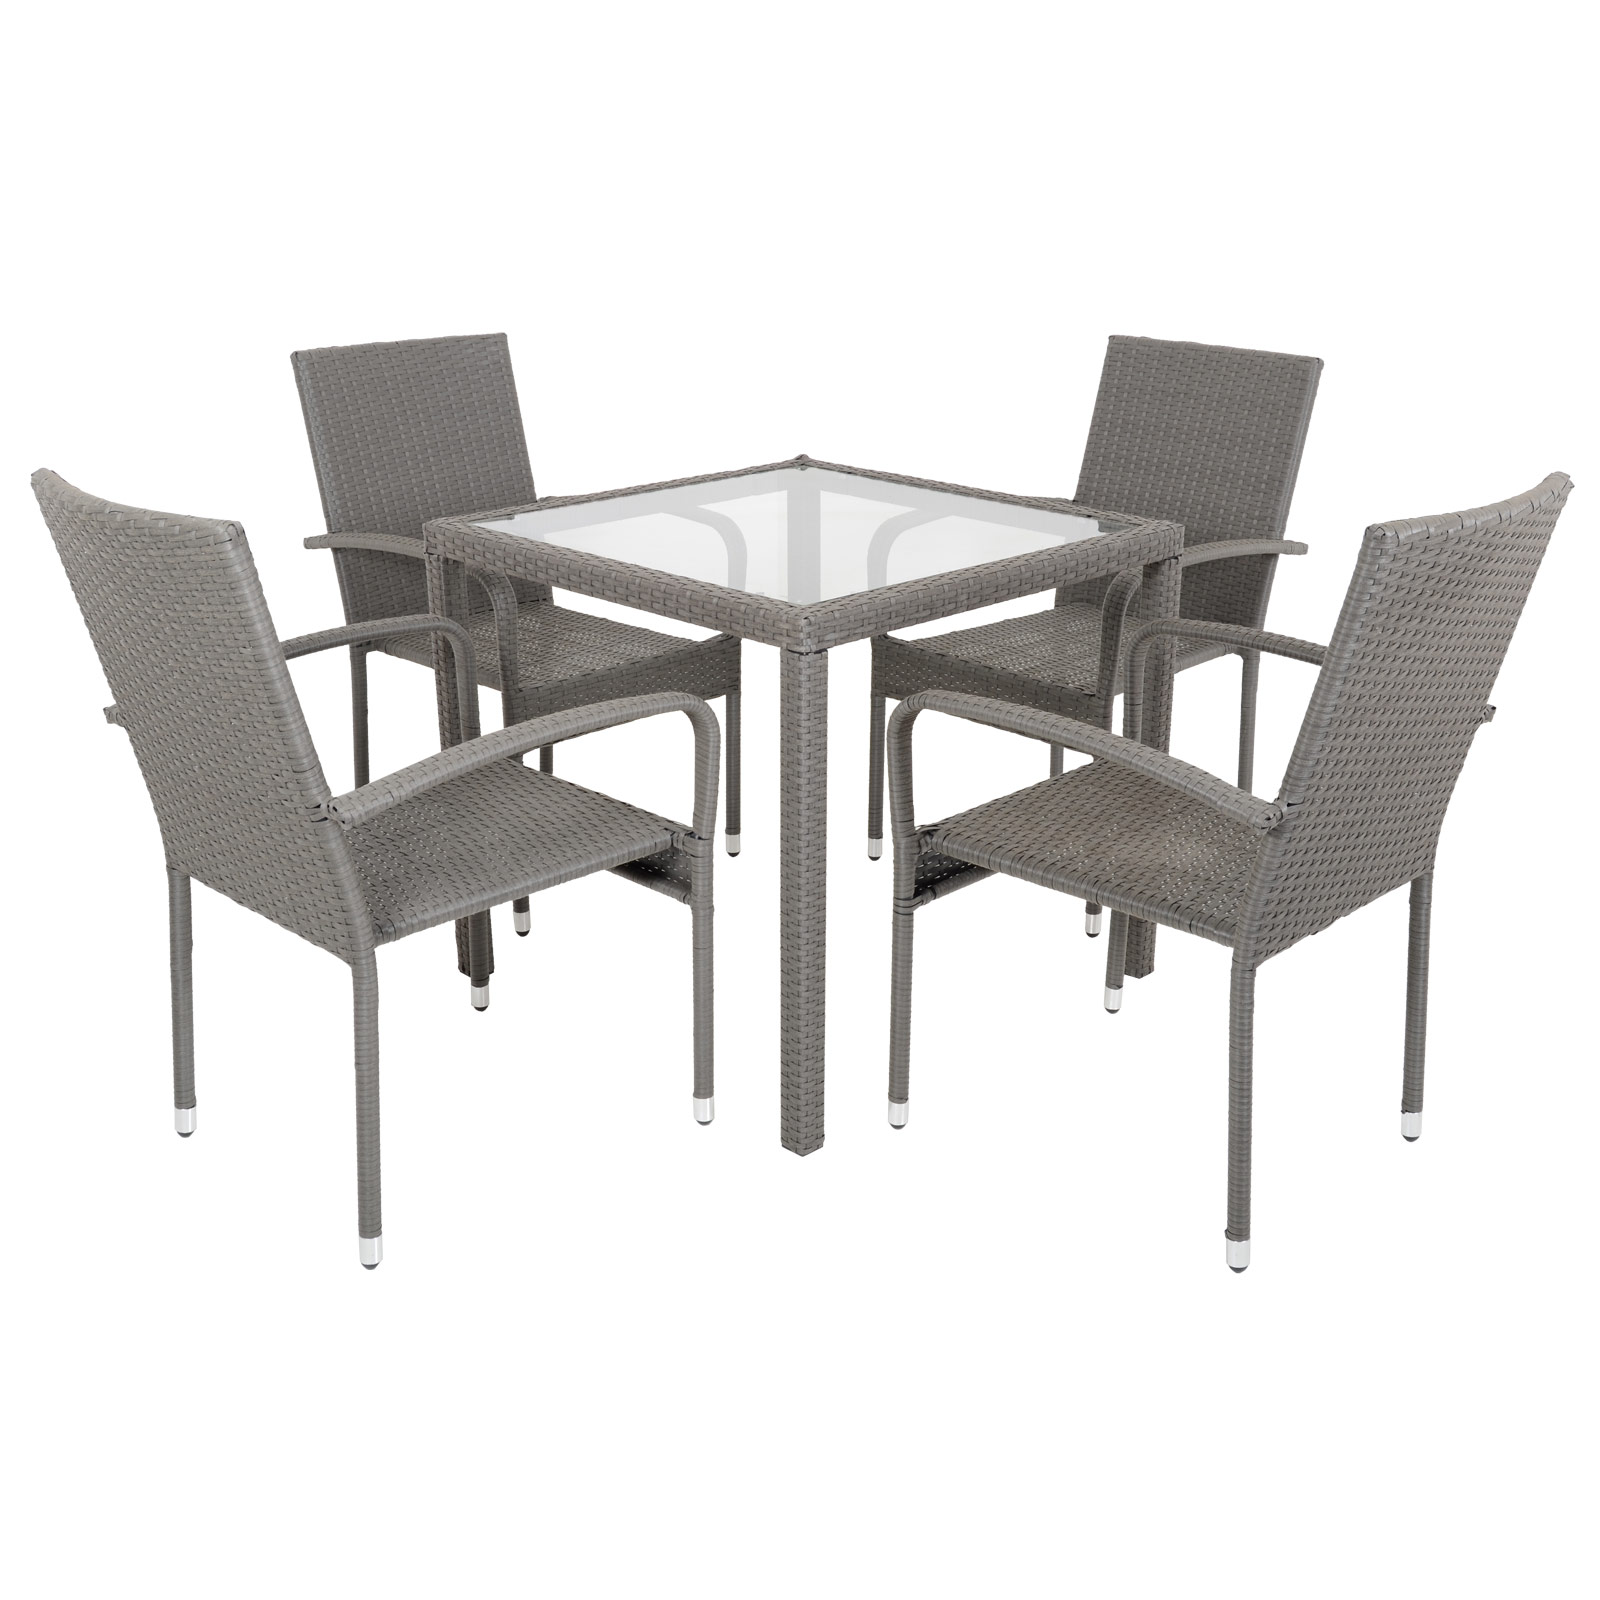 Rattan Dining Table And Chairs: Modena Rattan Wicker Dining Table With 4 Chairs Garden